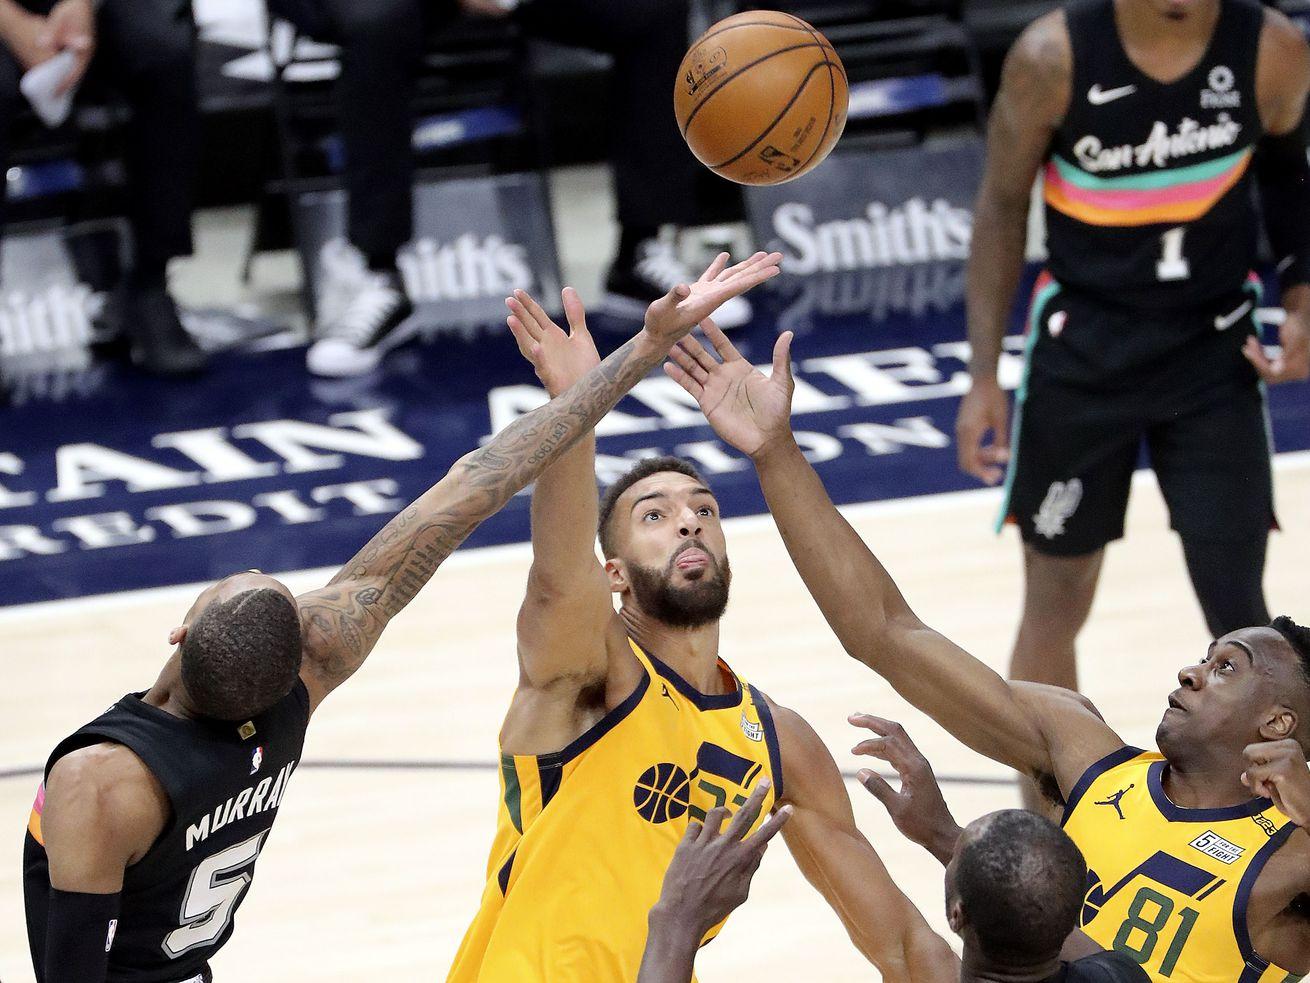 San Antonio Spurs guard Dejounte Murray (5), Utah Jazz center Rudy Gobert (27) and Utah Jazz guard Miye Oni (81) reach for the rebound during an NBA game at Vivint Smart Home Arena in Salt Lake City on Monday, May 3, 2021. The Jazz won 110-99.